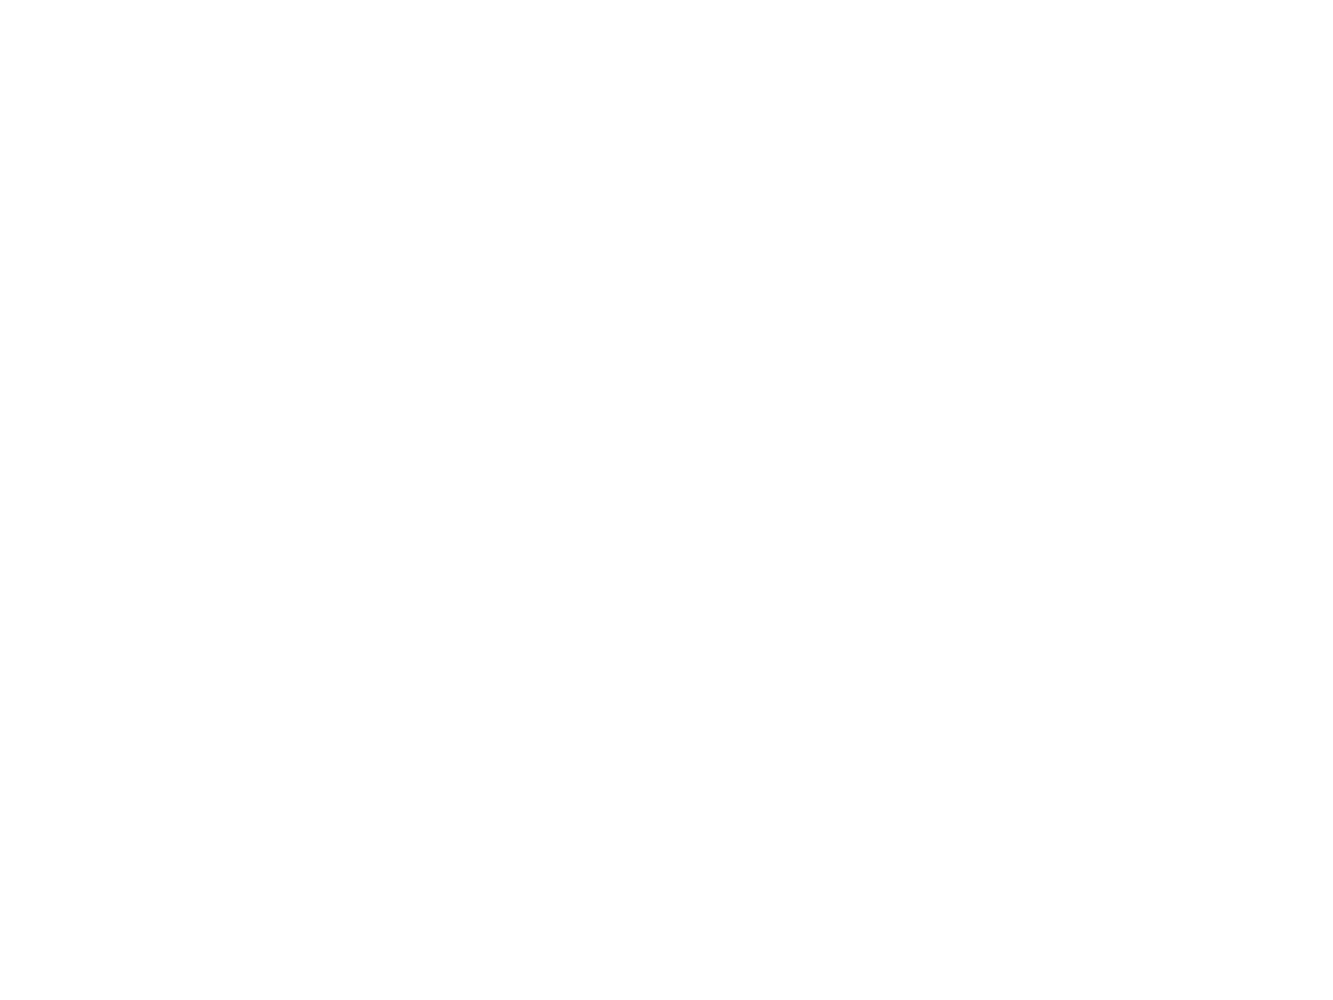 Stockholm Community Church